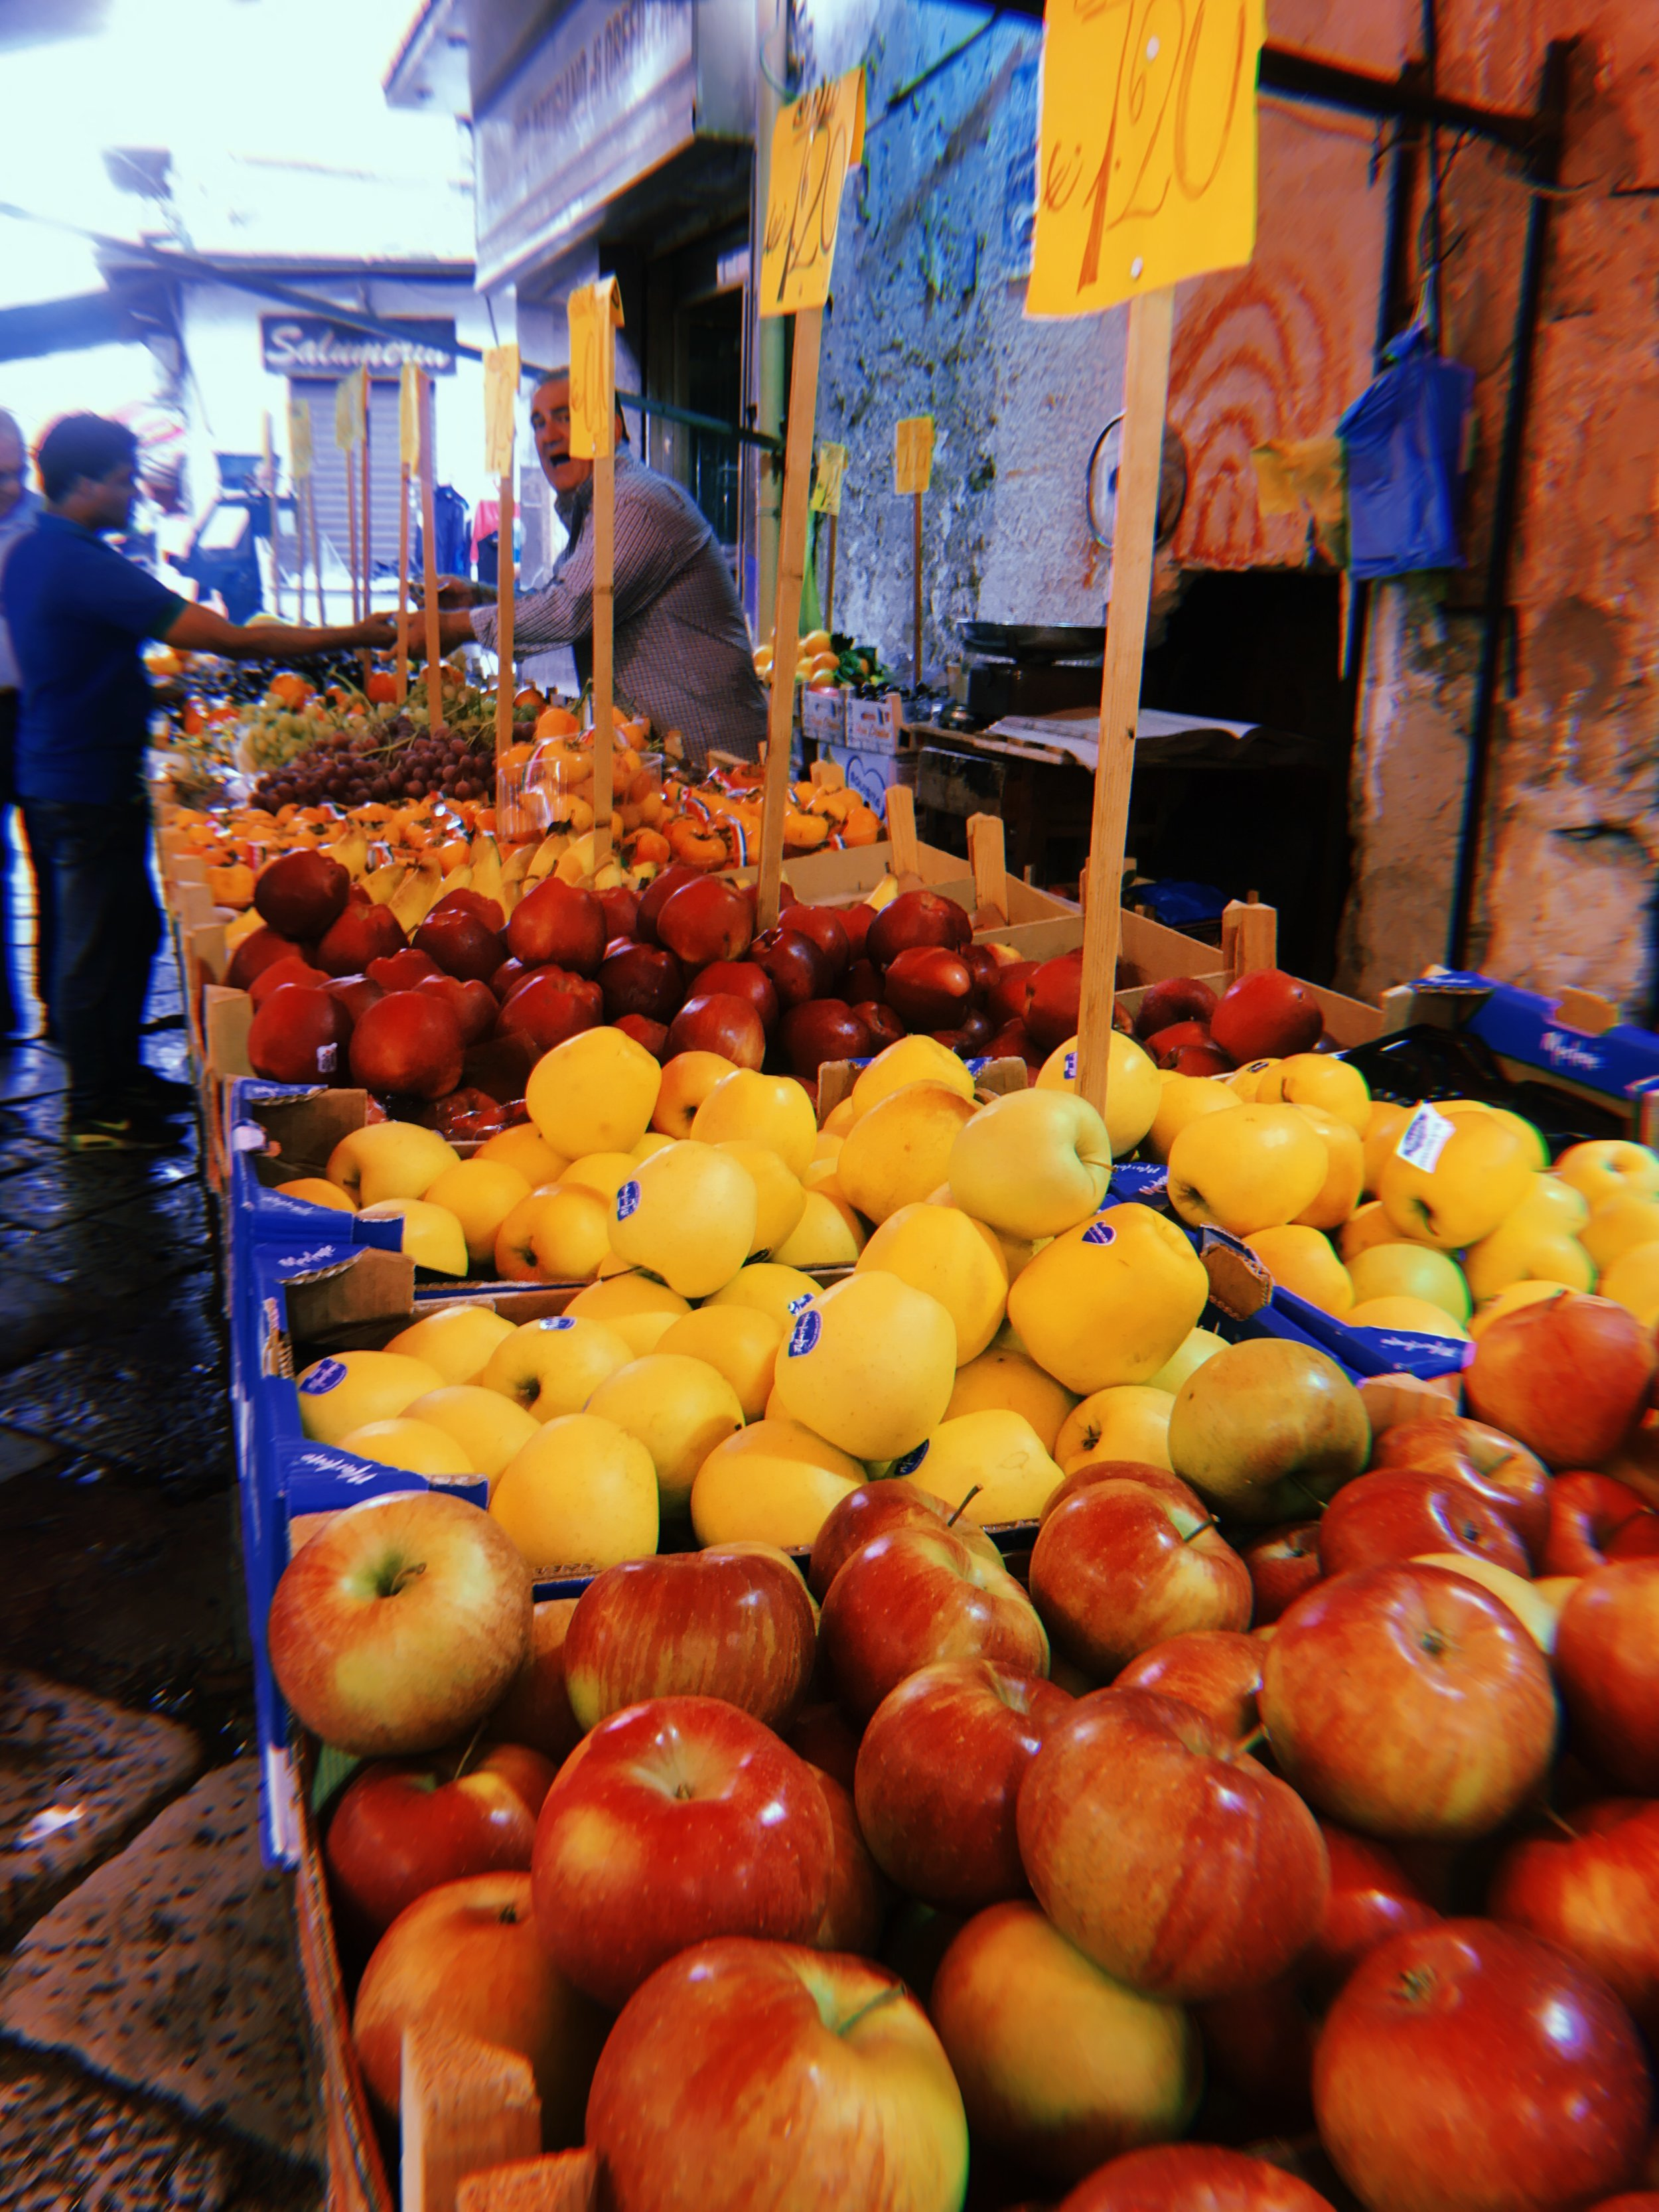 - 9 Tips How To Explore Palermo Markets Like a Pro